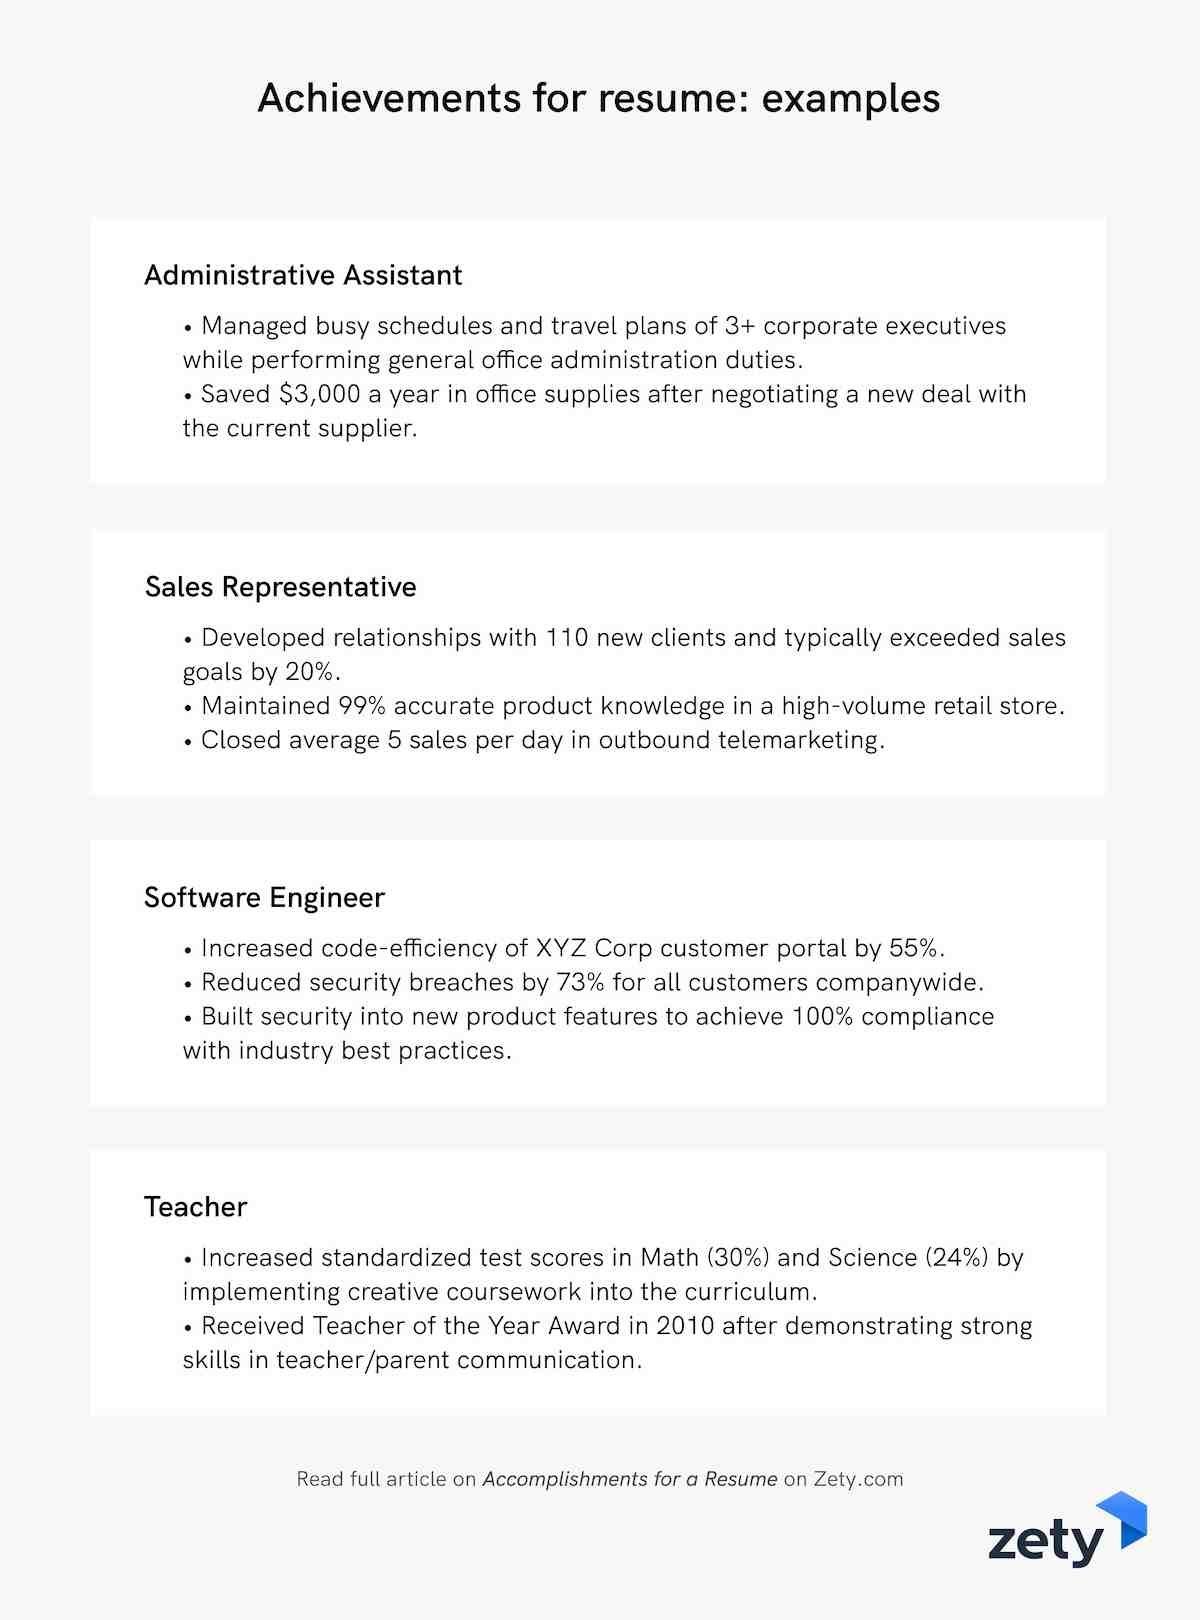 accomplishments for resume achievements awards examples easy house cleaning experience Resume Accomplishments For Resume